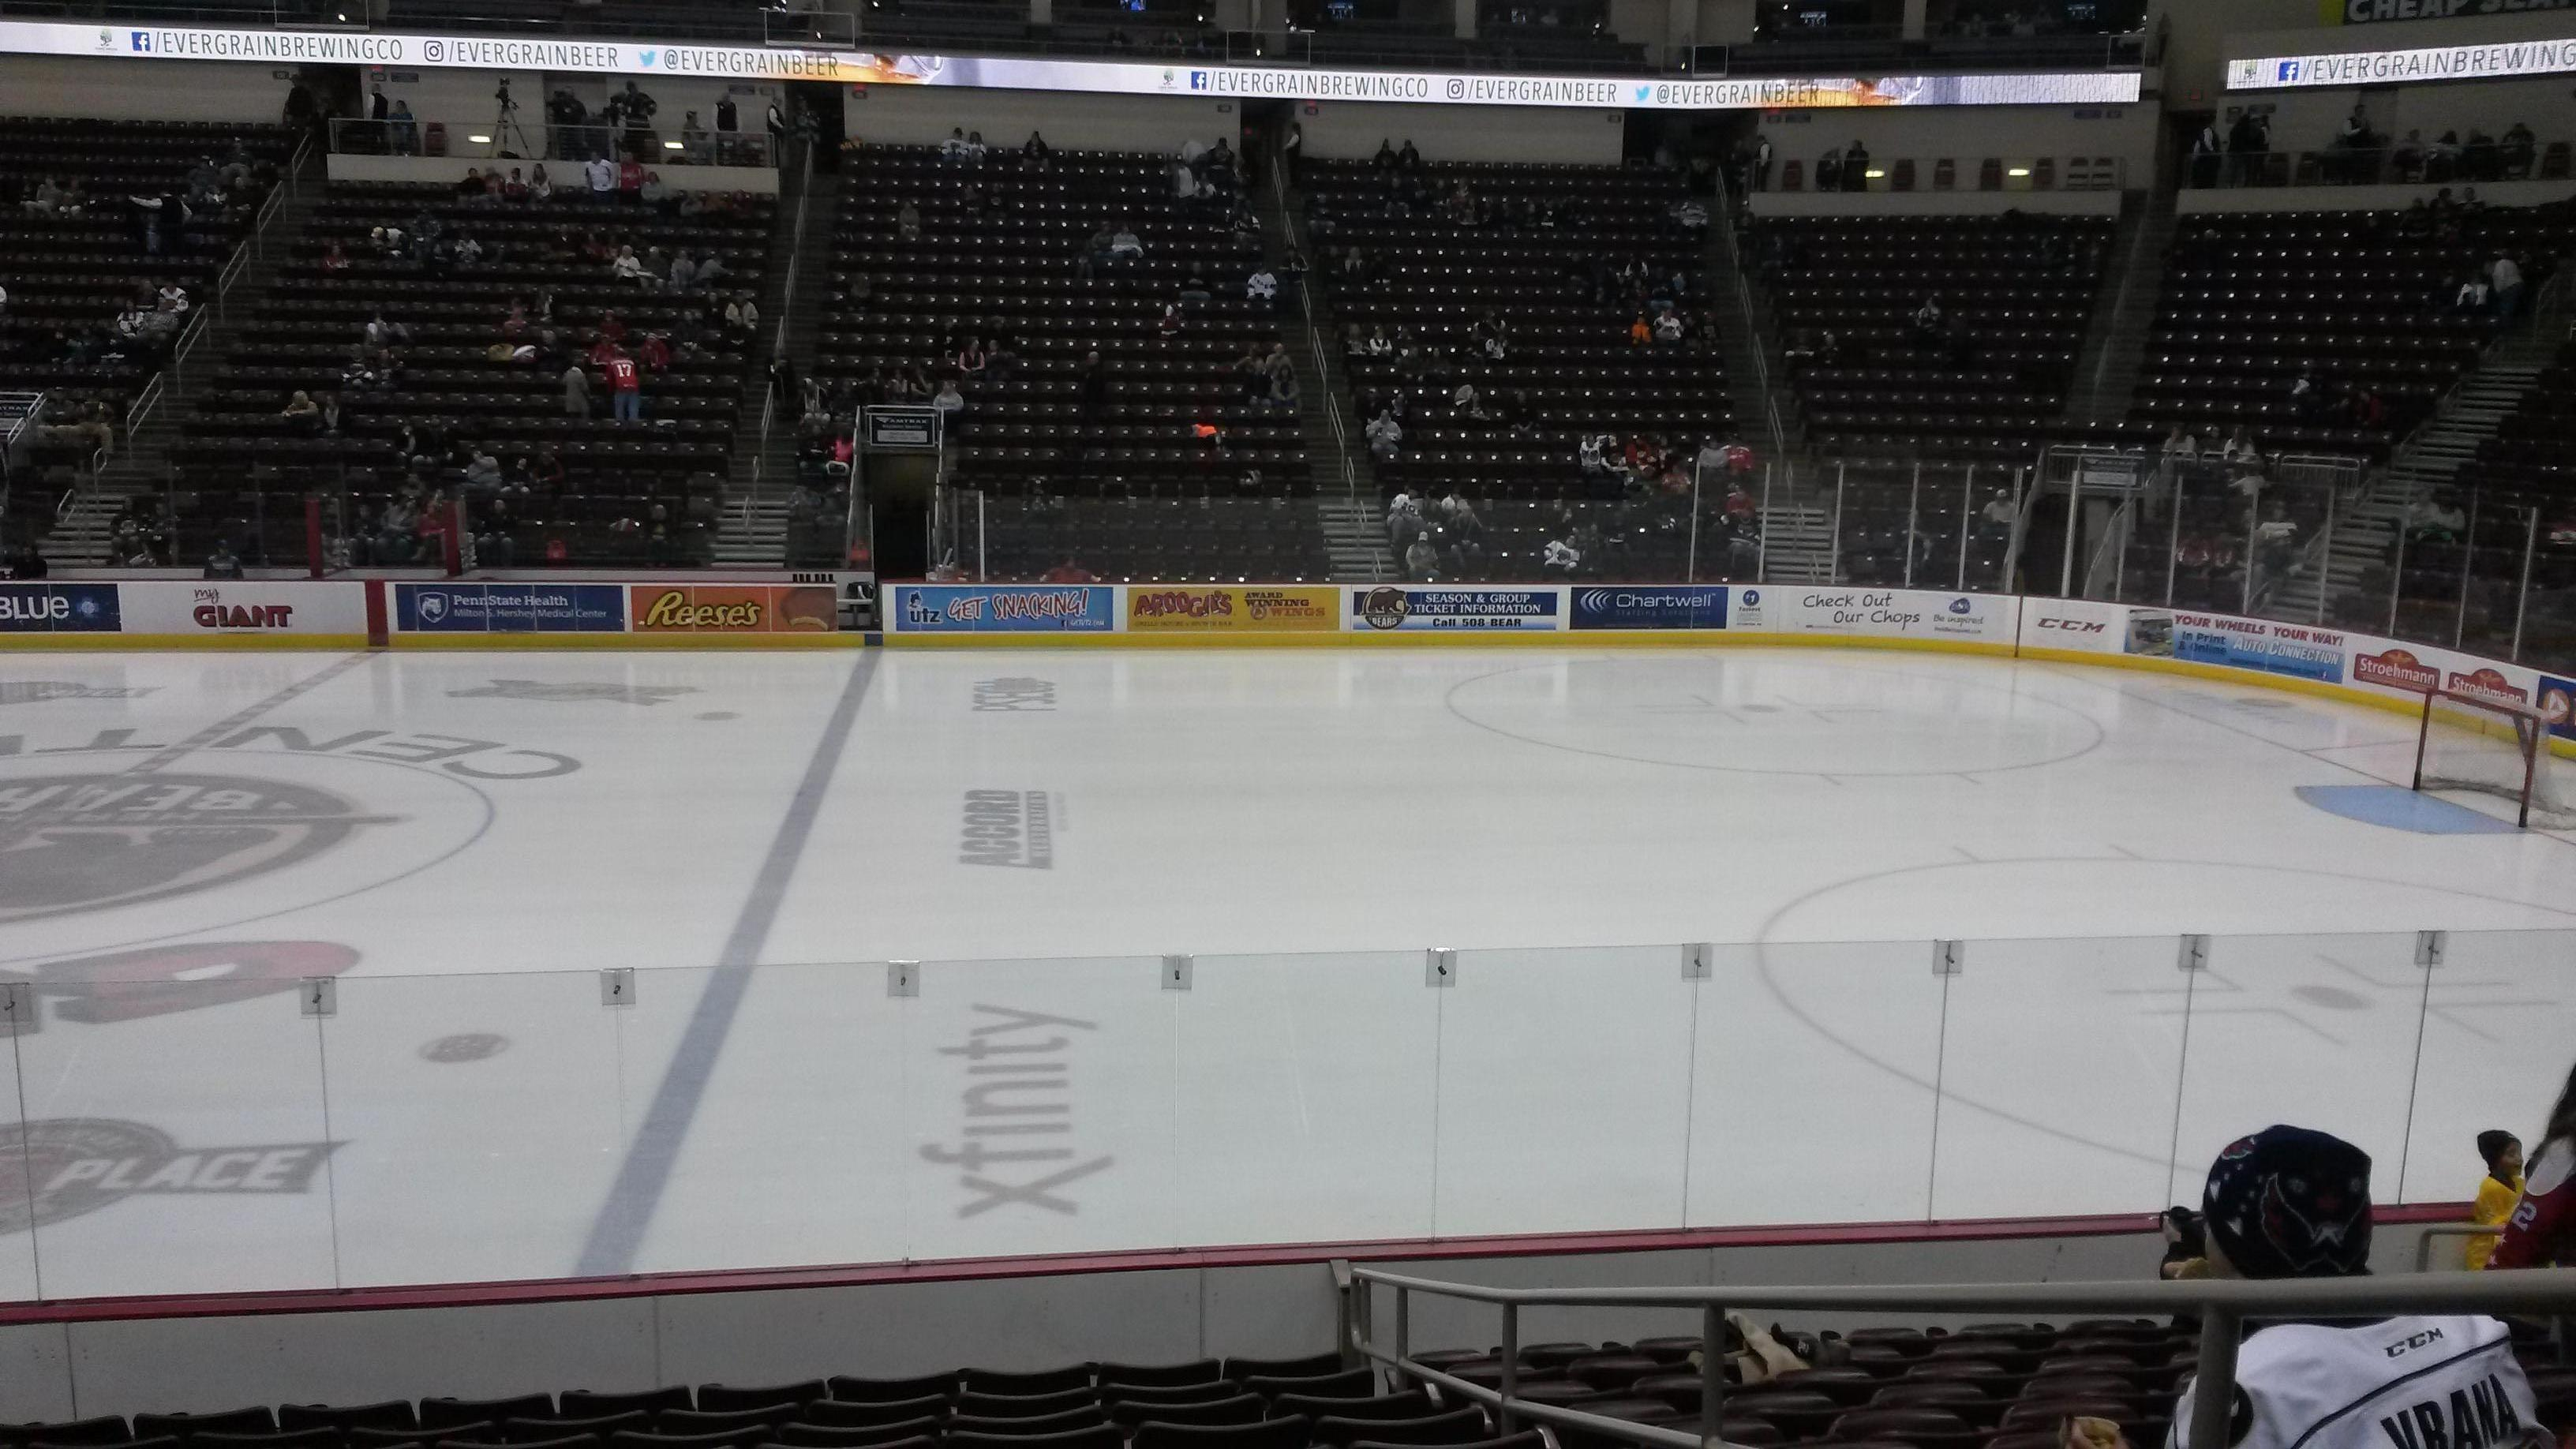 Giant Center Section 108c Row L Seat 3